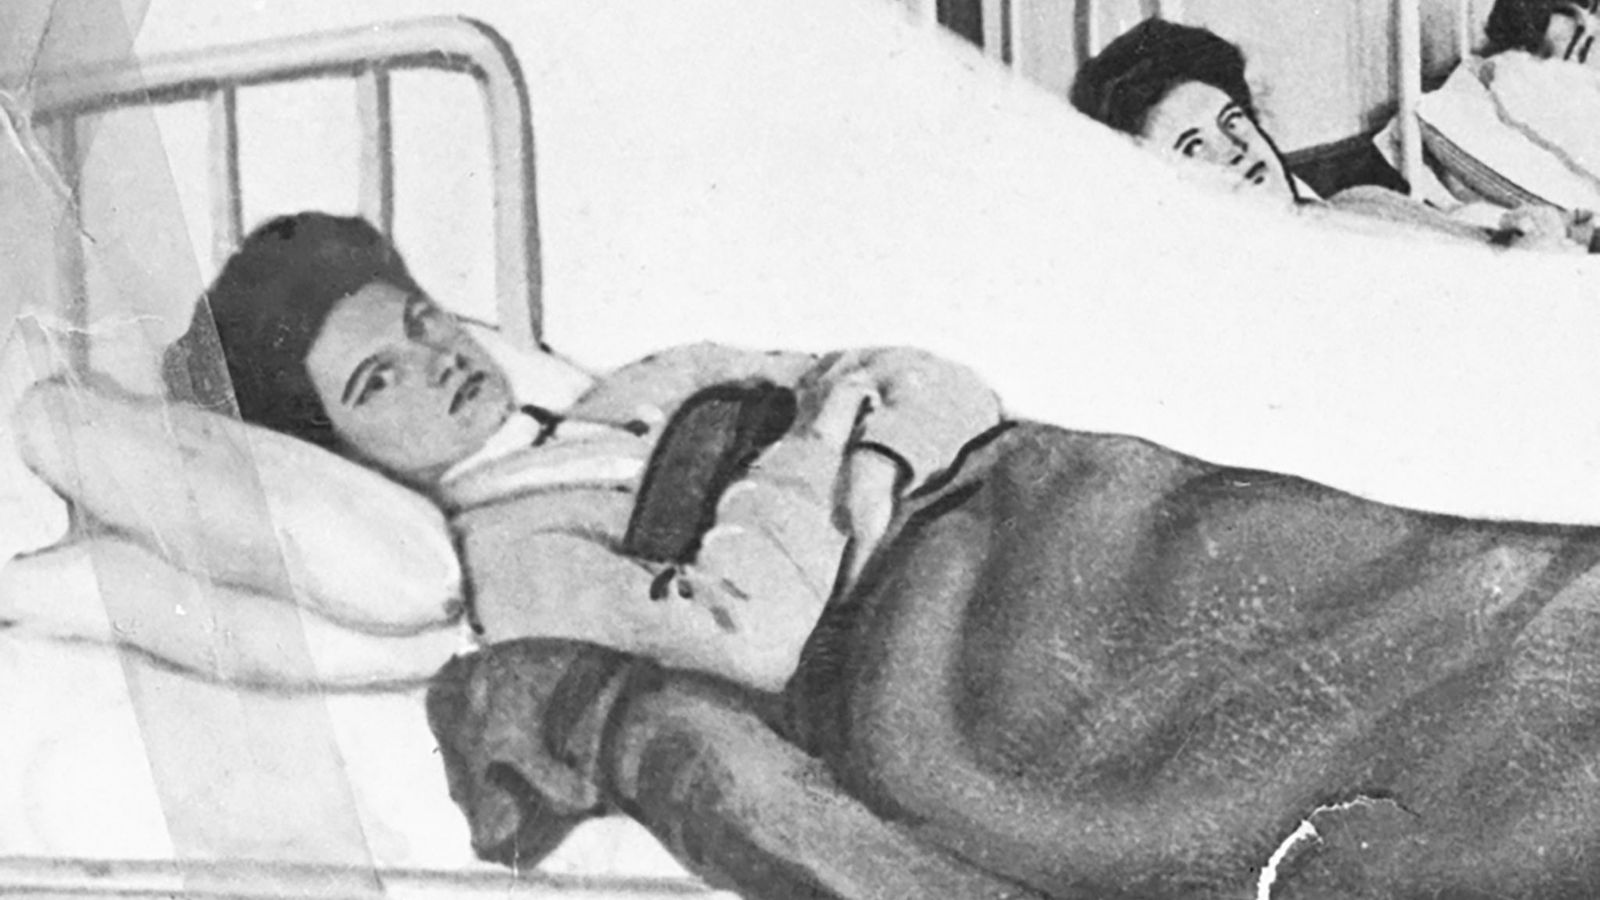 'Typhoid Mary' was in fact Mary Mallon, an asymptomatic carrier of the bacterial infection. She achieved ...